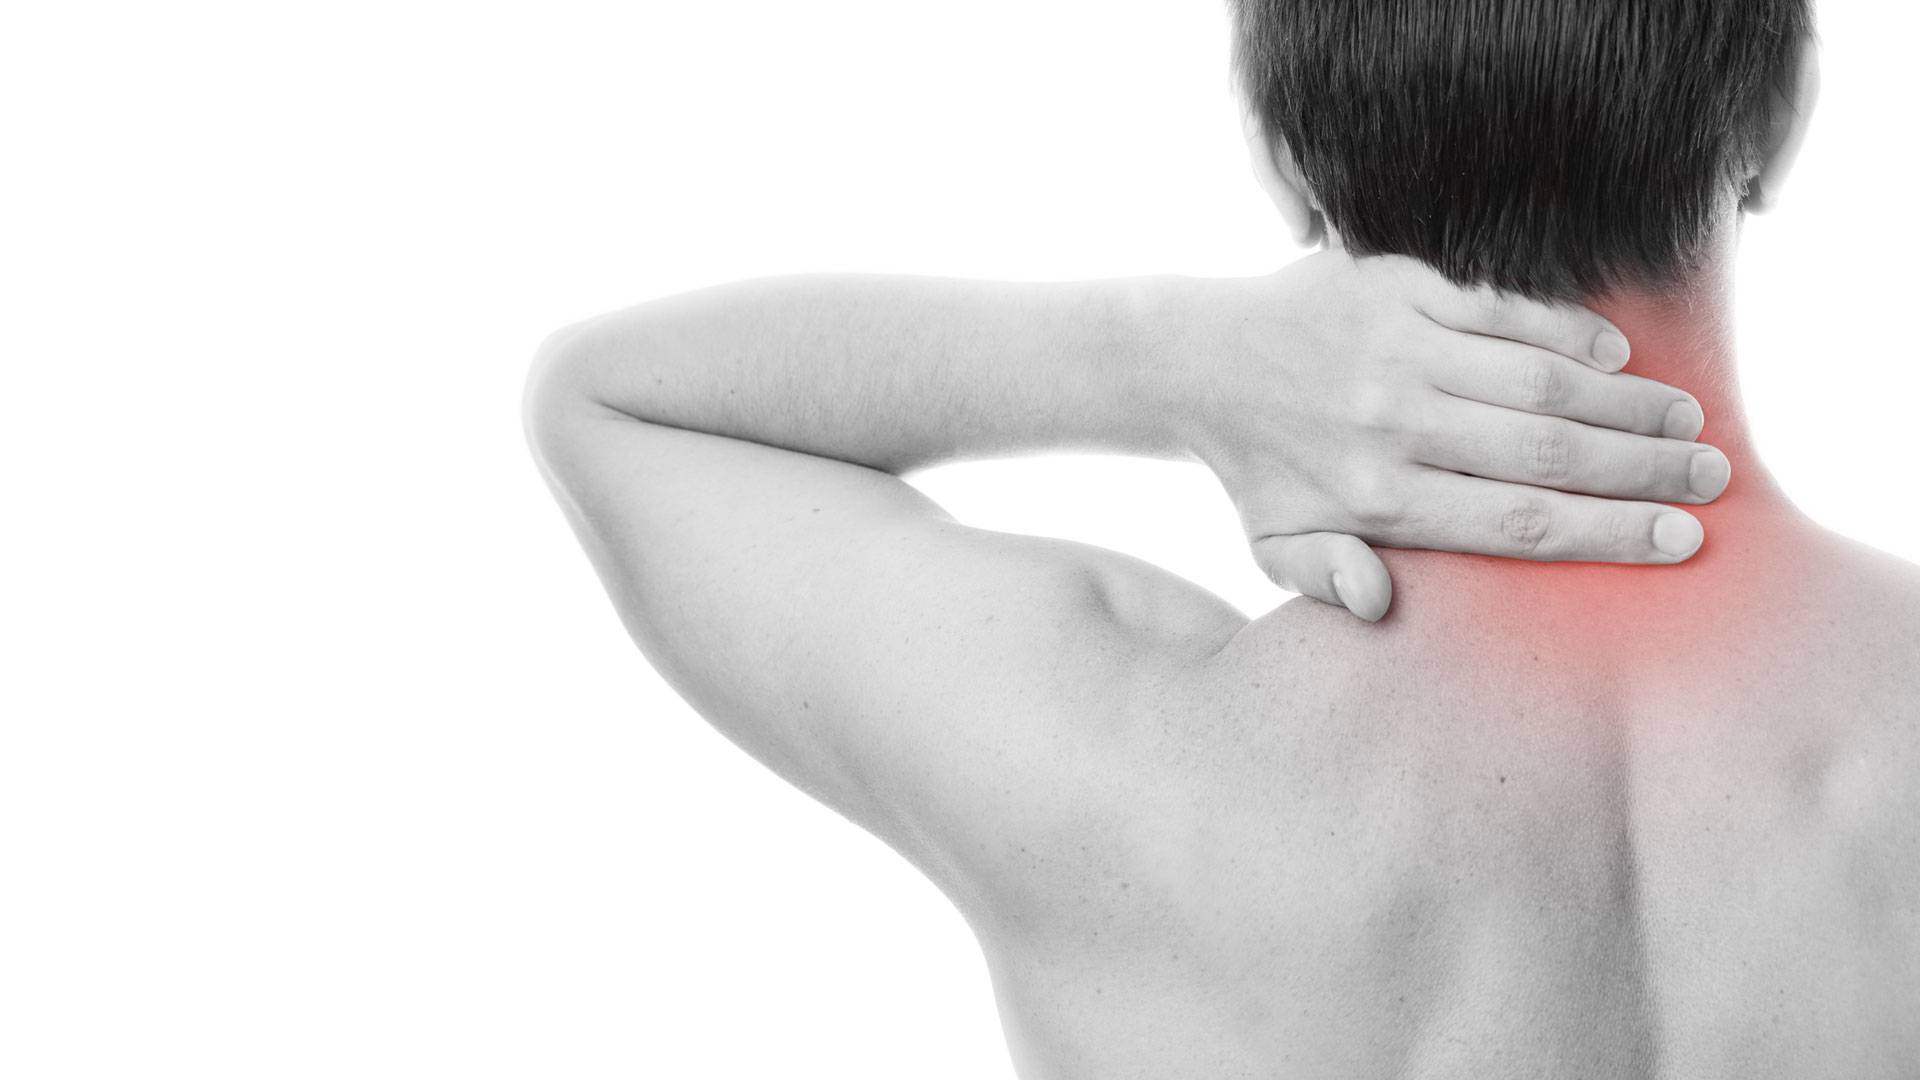 Muscle pain in the neck